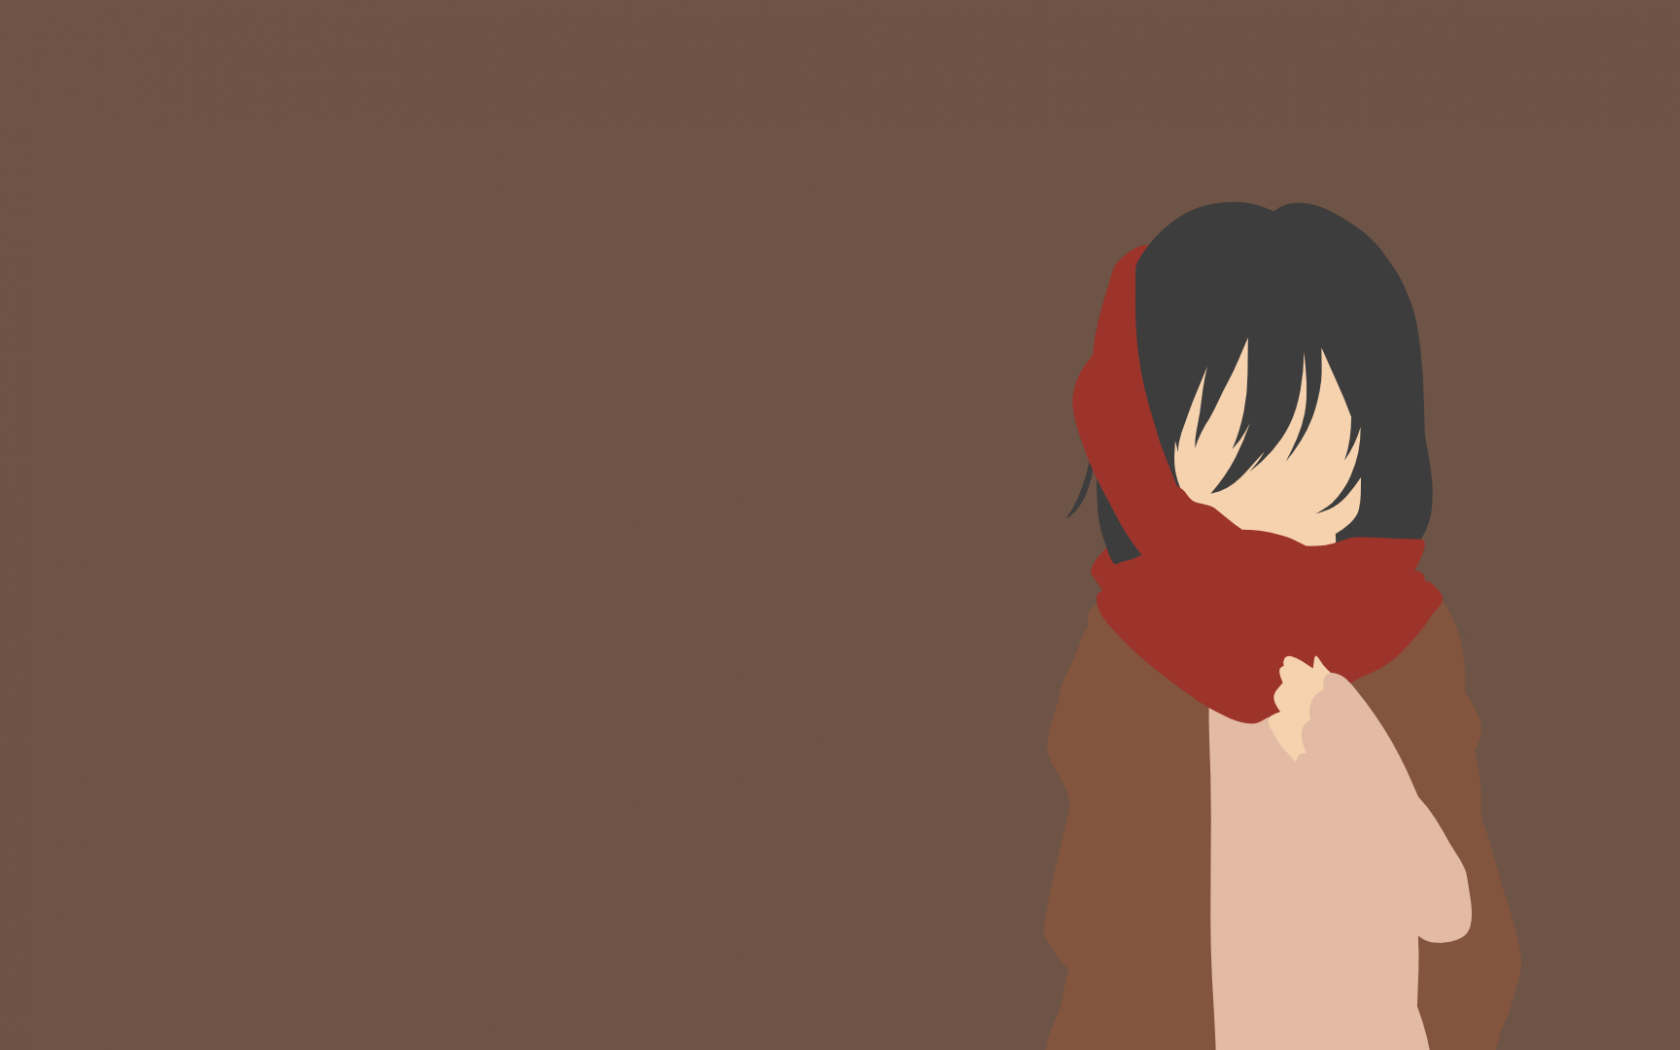 Anime Minimalist Wallpapers - Wallpaper Cave